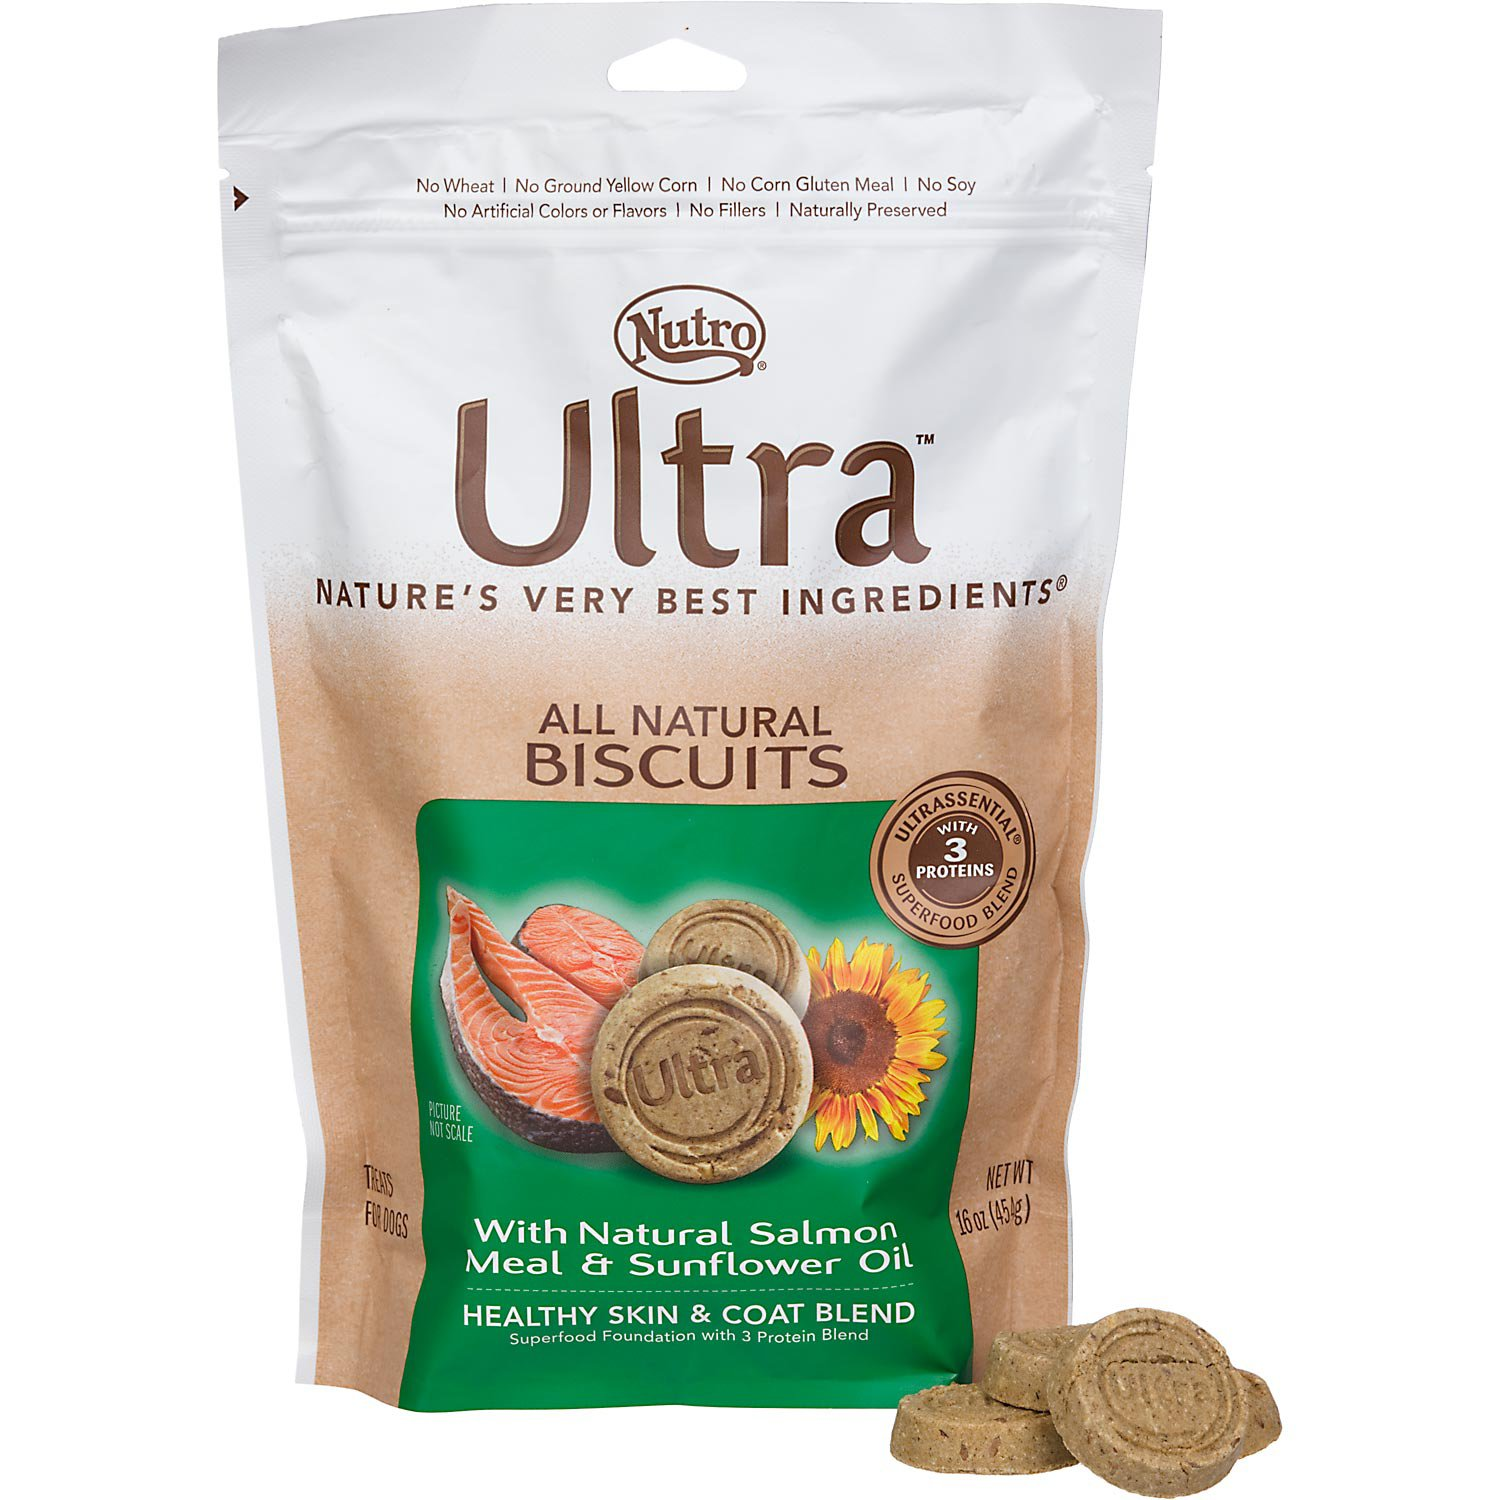 Nutro Ultra Healthy Skin & Coat Adult Dog Biscuits